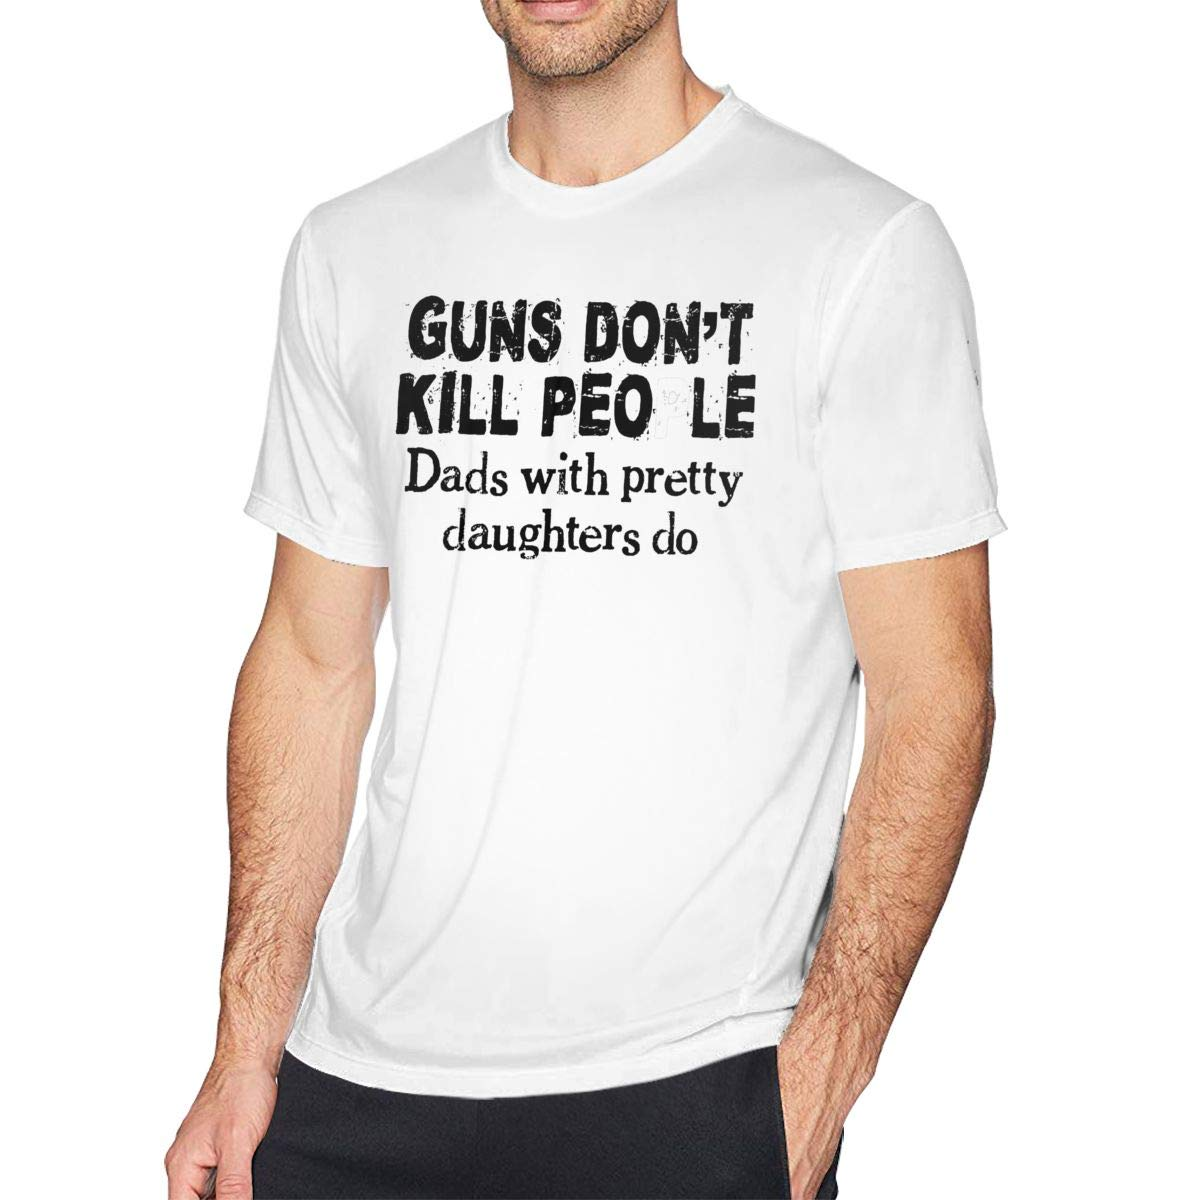 Bfcxbgdsig Guns Dont Kill People Dads with Pretty Daughters Do Soft and Comfortable Fashionable Tshirt with Round Collar White XXL